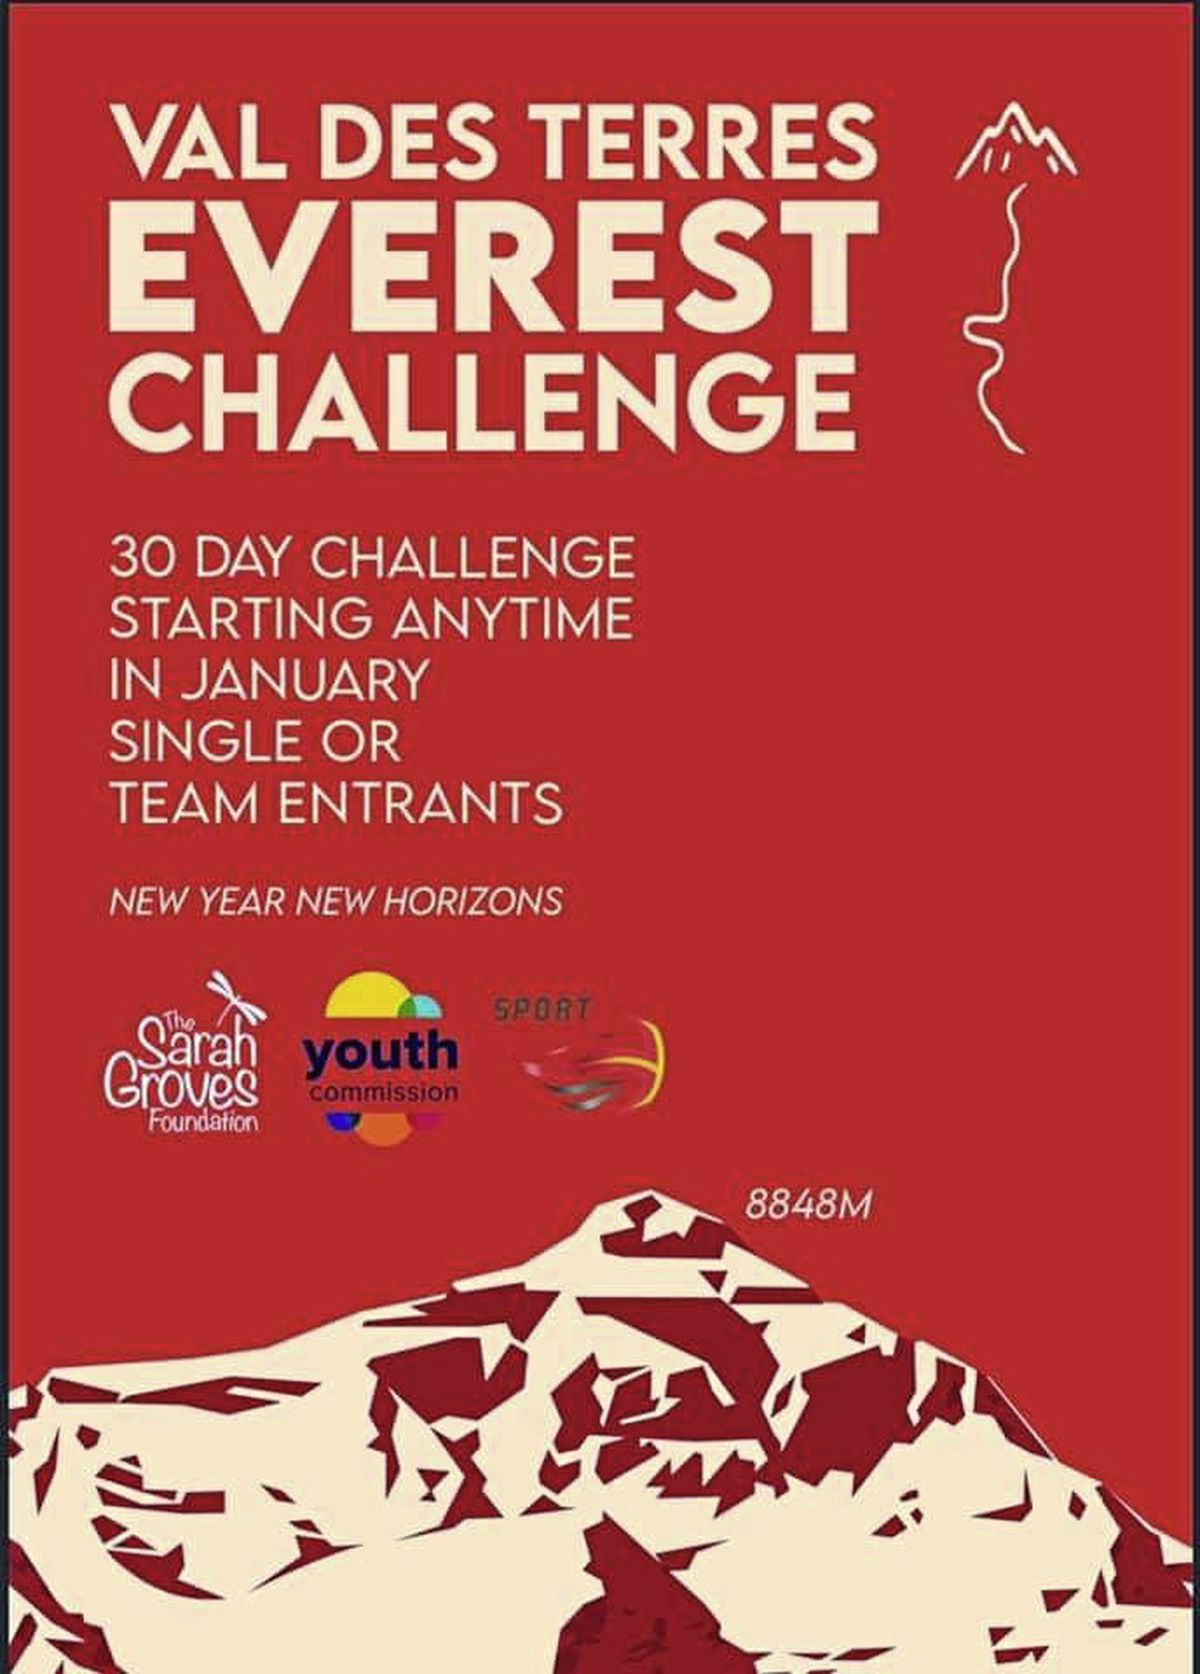 The Val des Terres Everest Challenge starts today, New Year's Day.